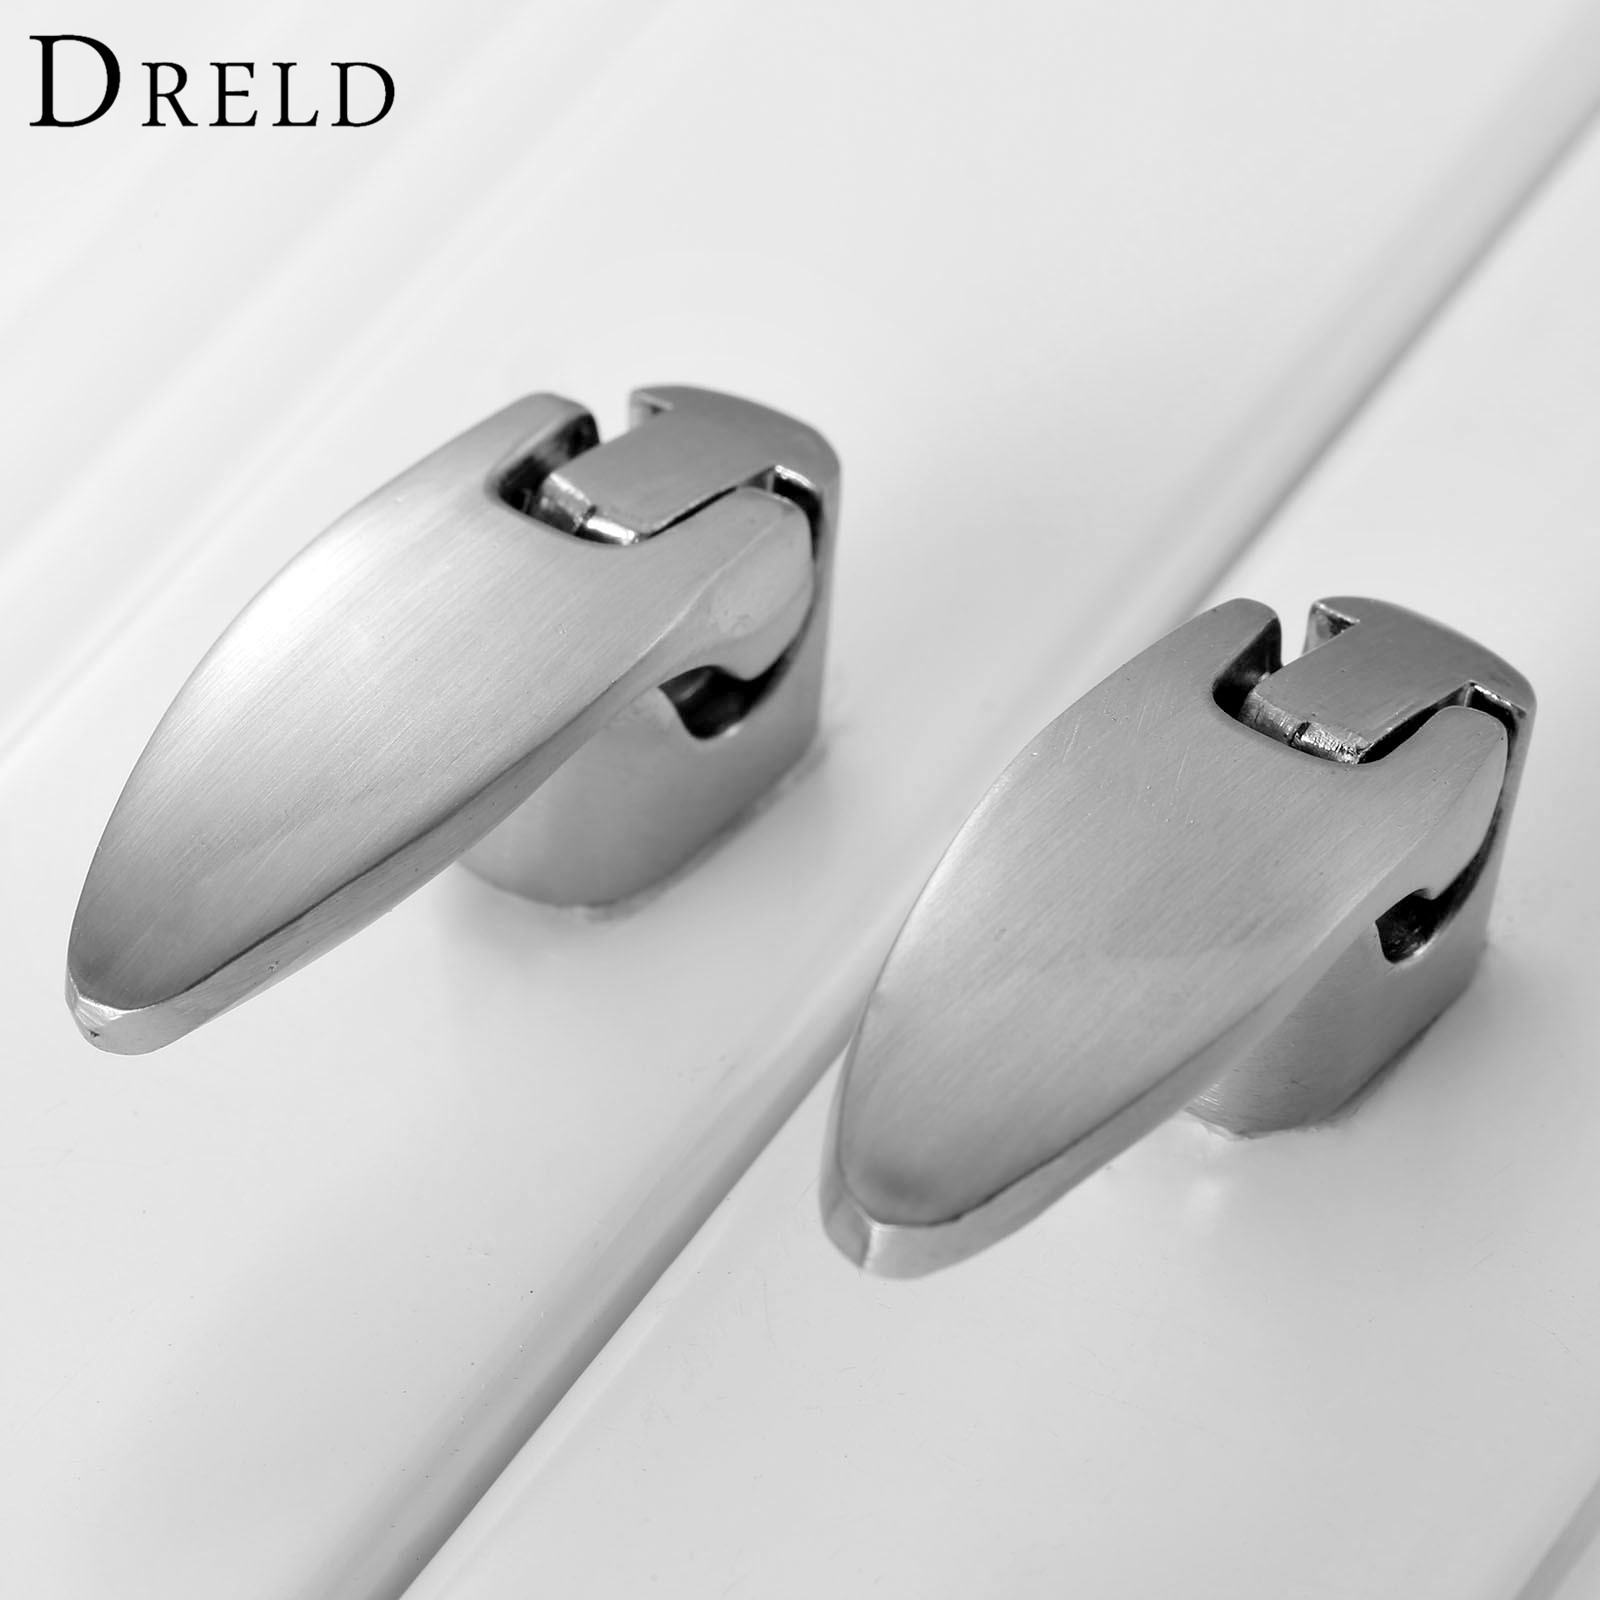 compare prices on bedroom cupboards online shopping buy low price dreld 2pcs furniture handles alloy mini pull knobs bedroom cupboard drawer cabinet knobs and handles kitchen